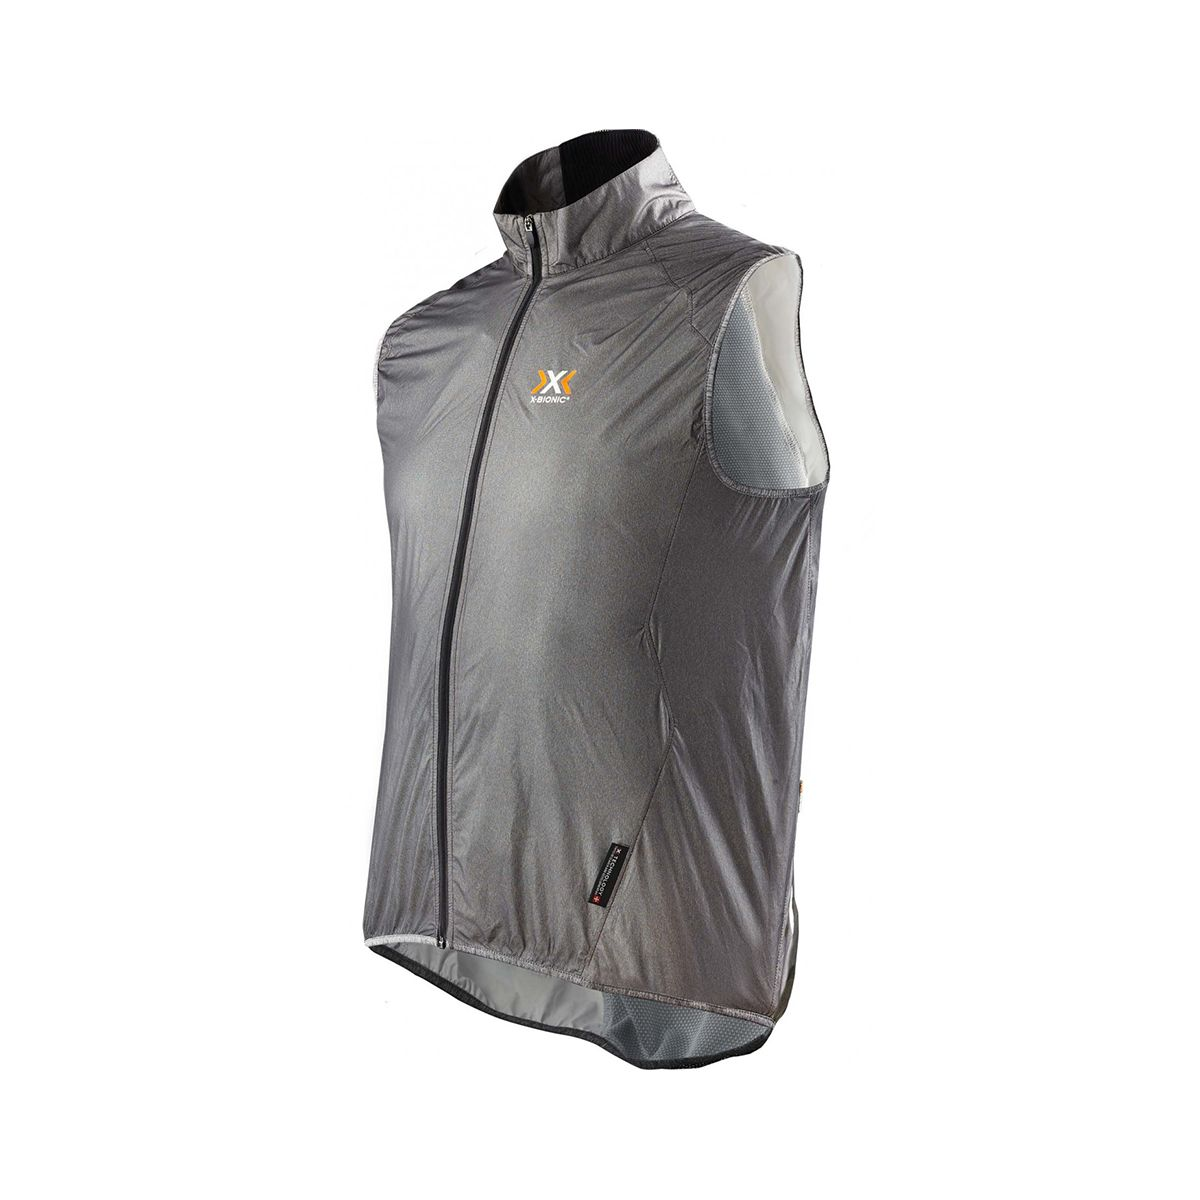 BIKING STREAMLITE VEST